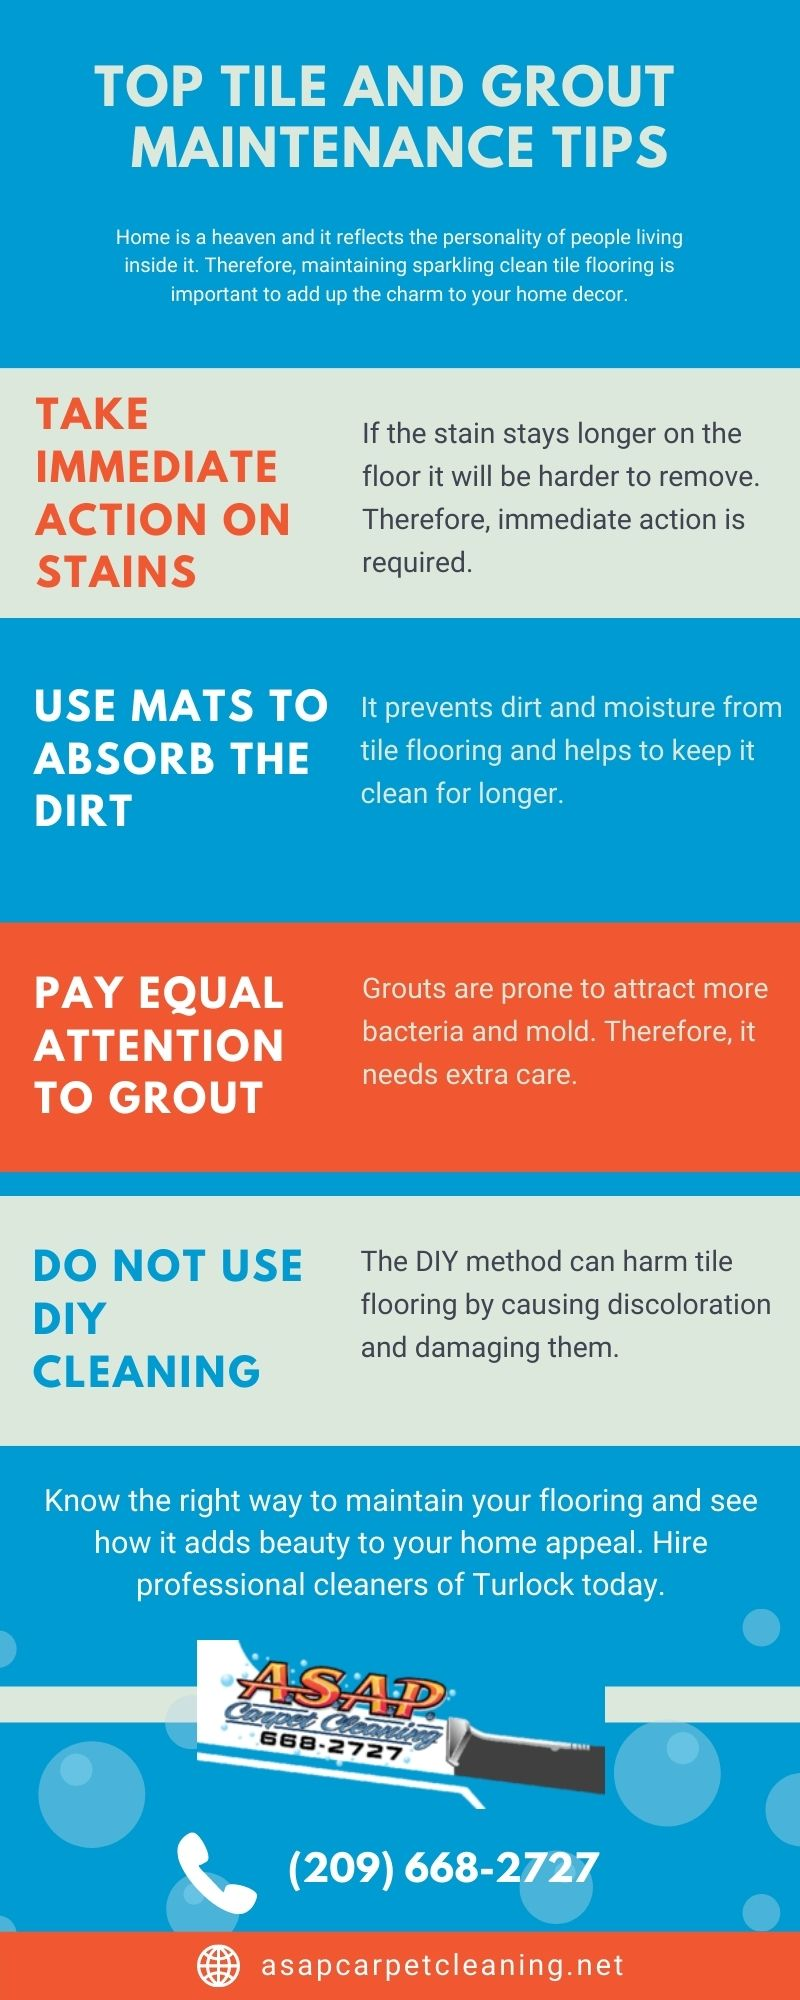 Top Tile And Grout Maintenance Tips [Infographic]